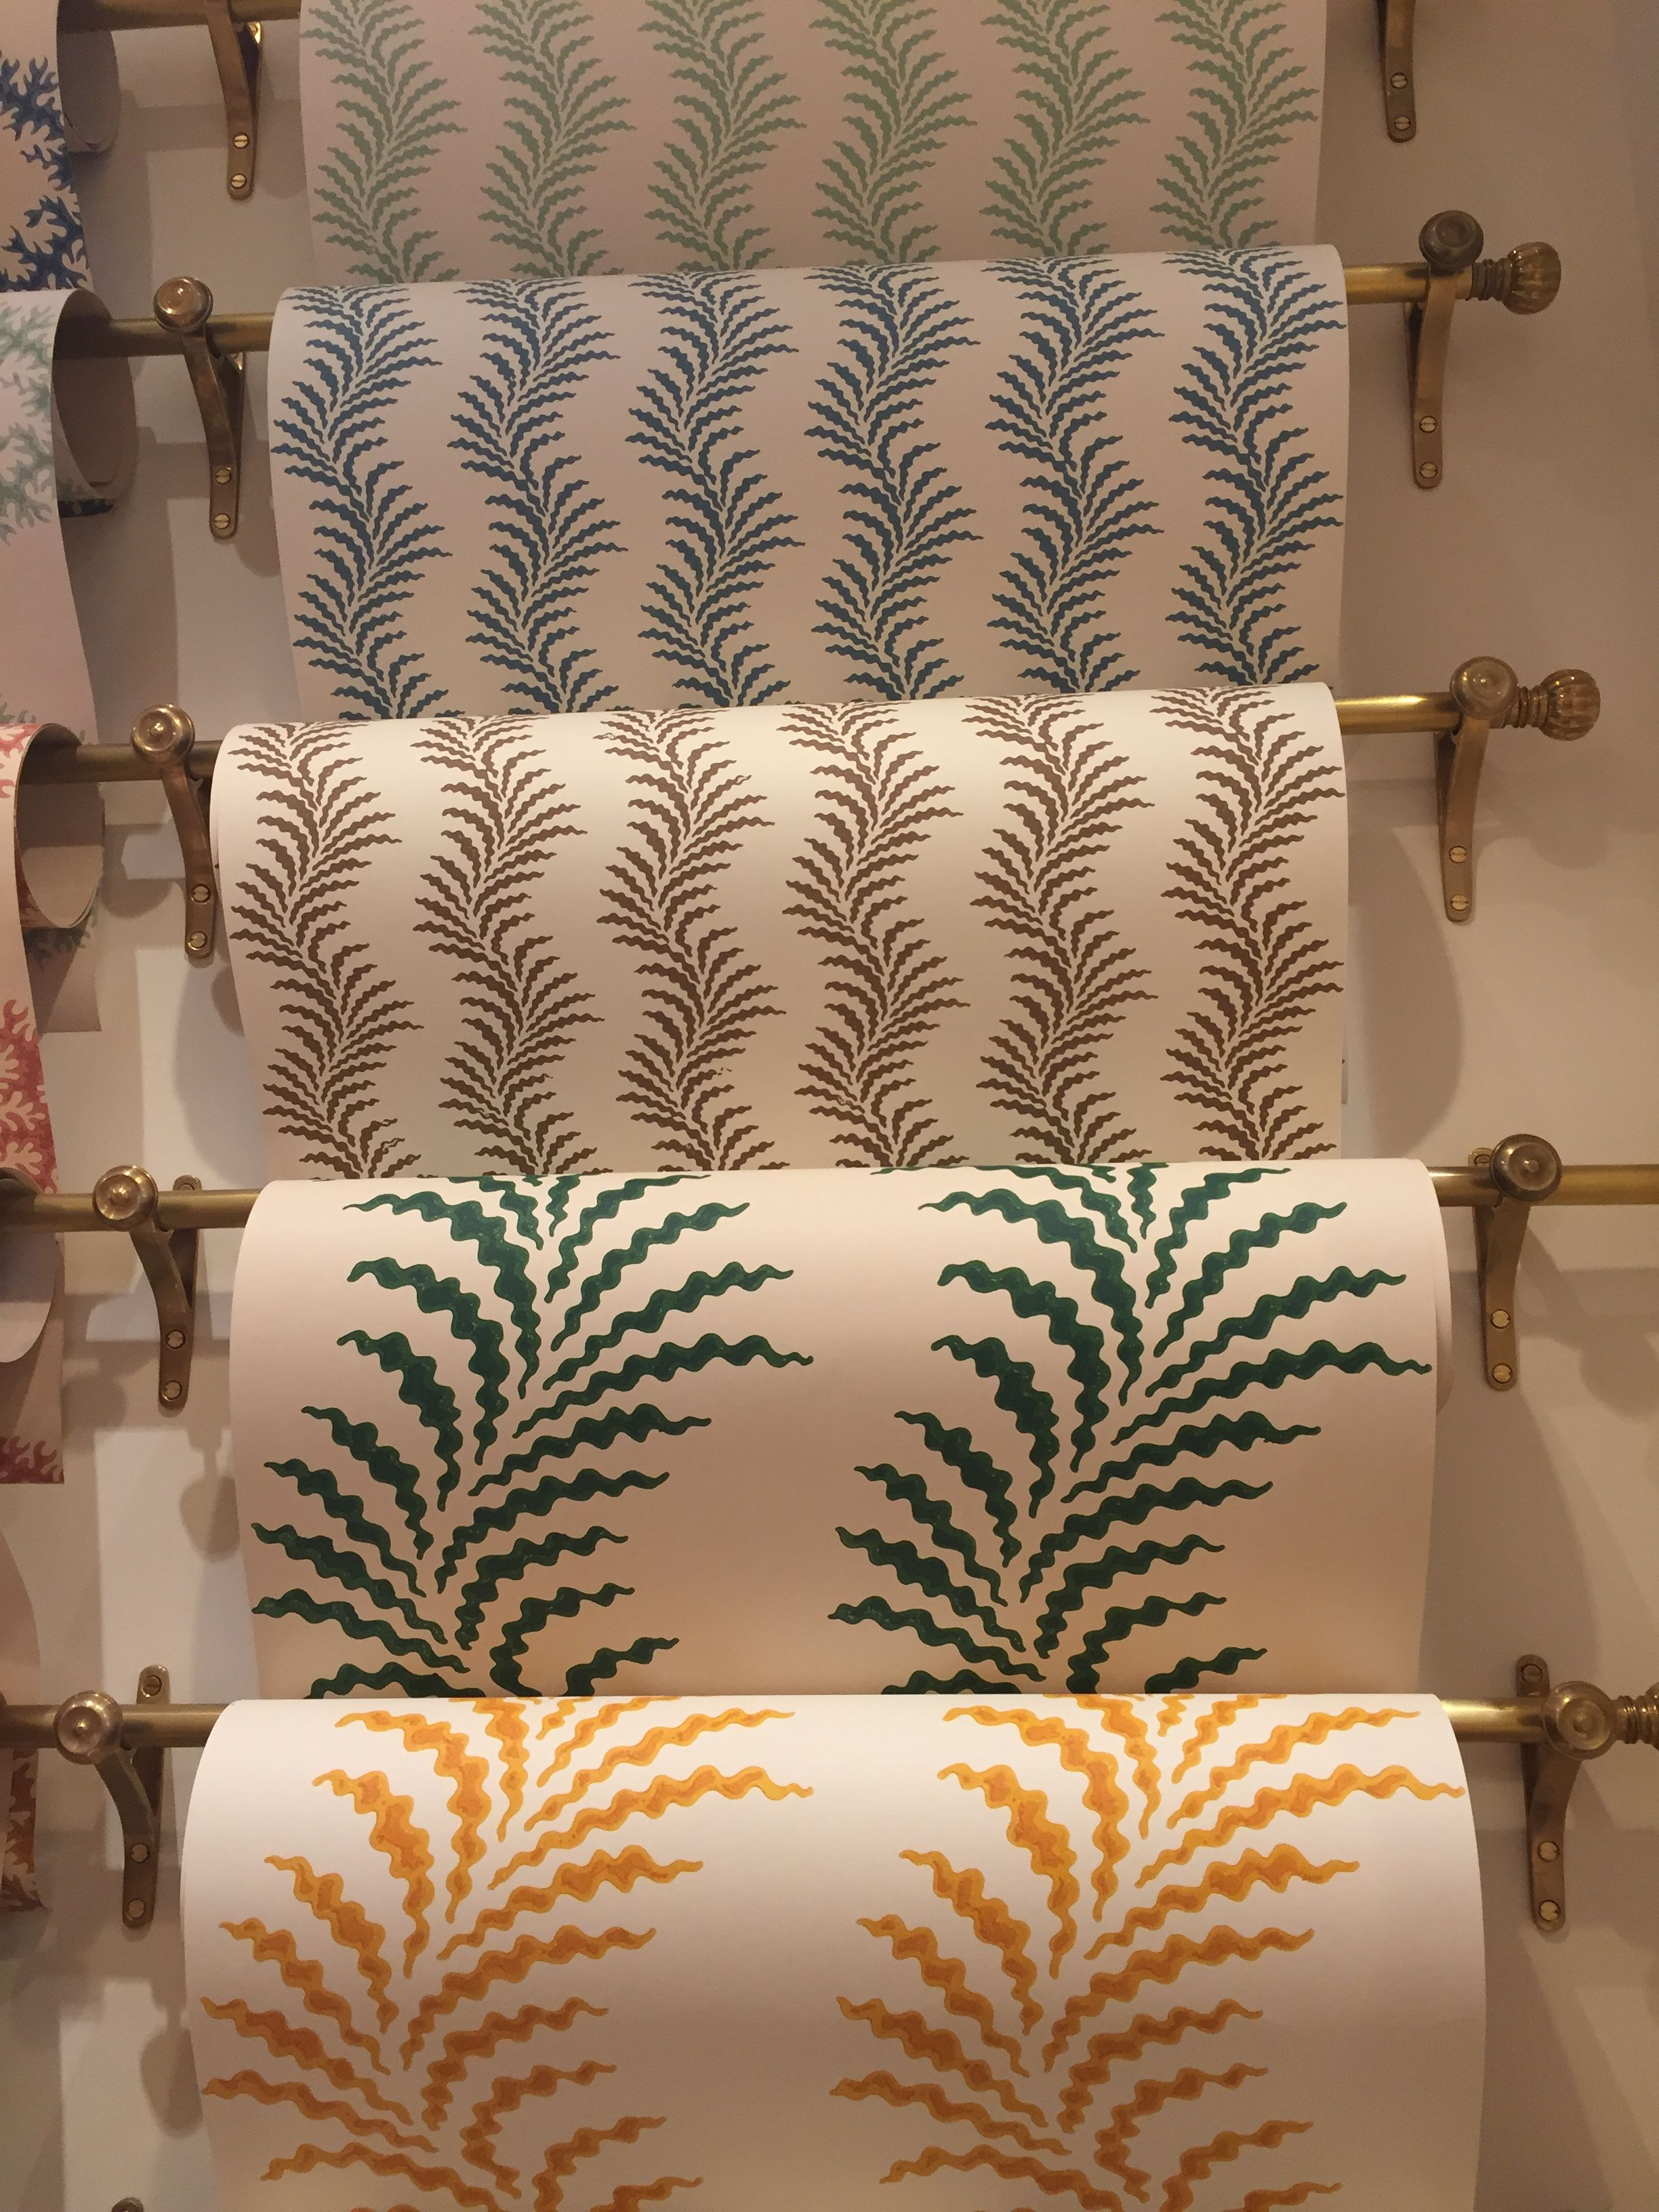 Soane Britain's Scrolling Fern Frond wallpaper with smaller scaled